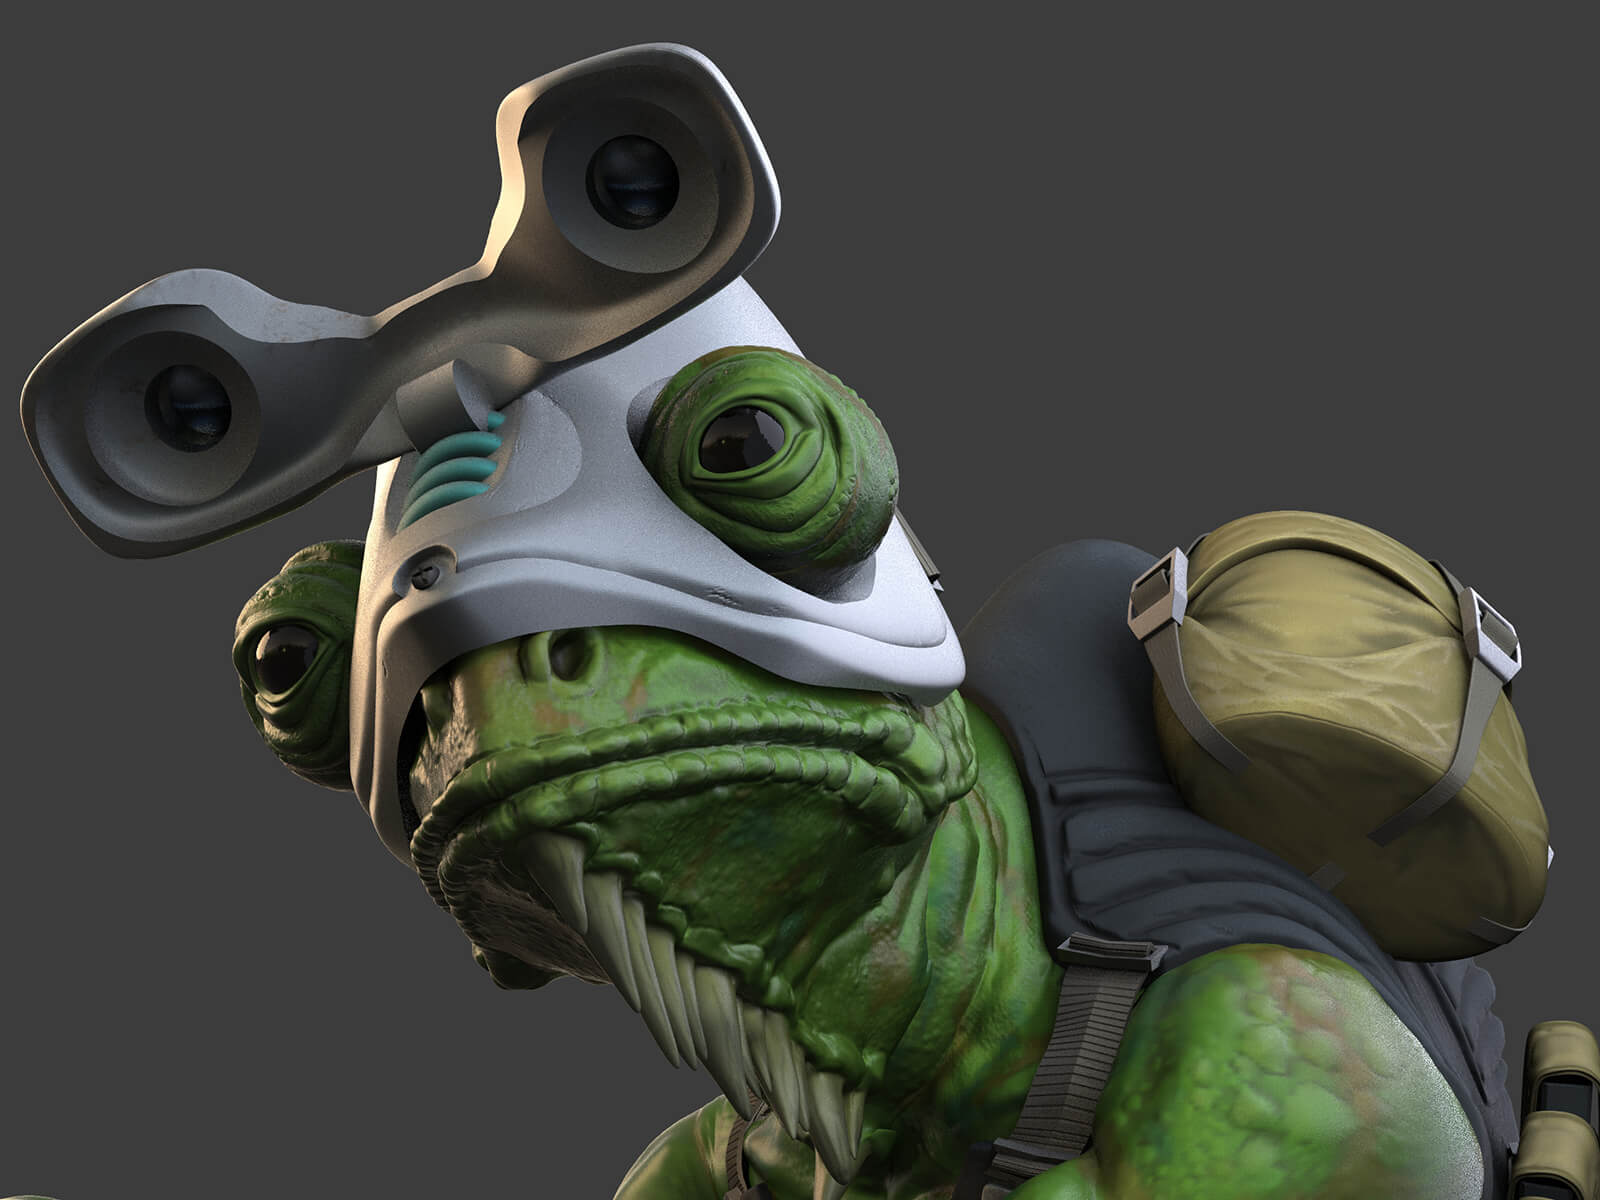 Close-up of a lizard wearing goggles and carrying a back pack